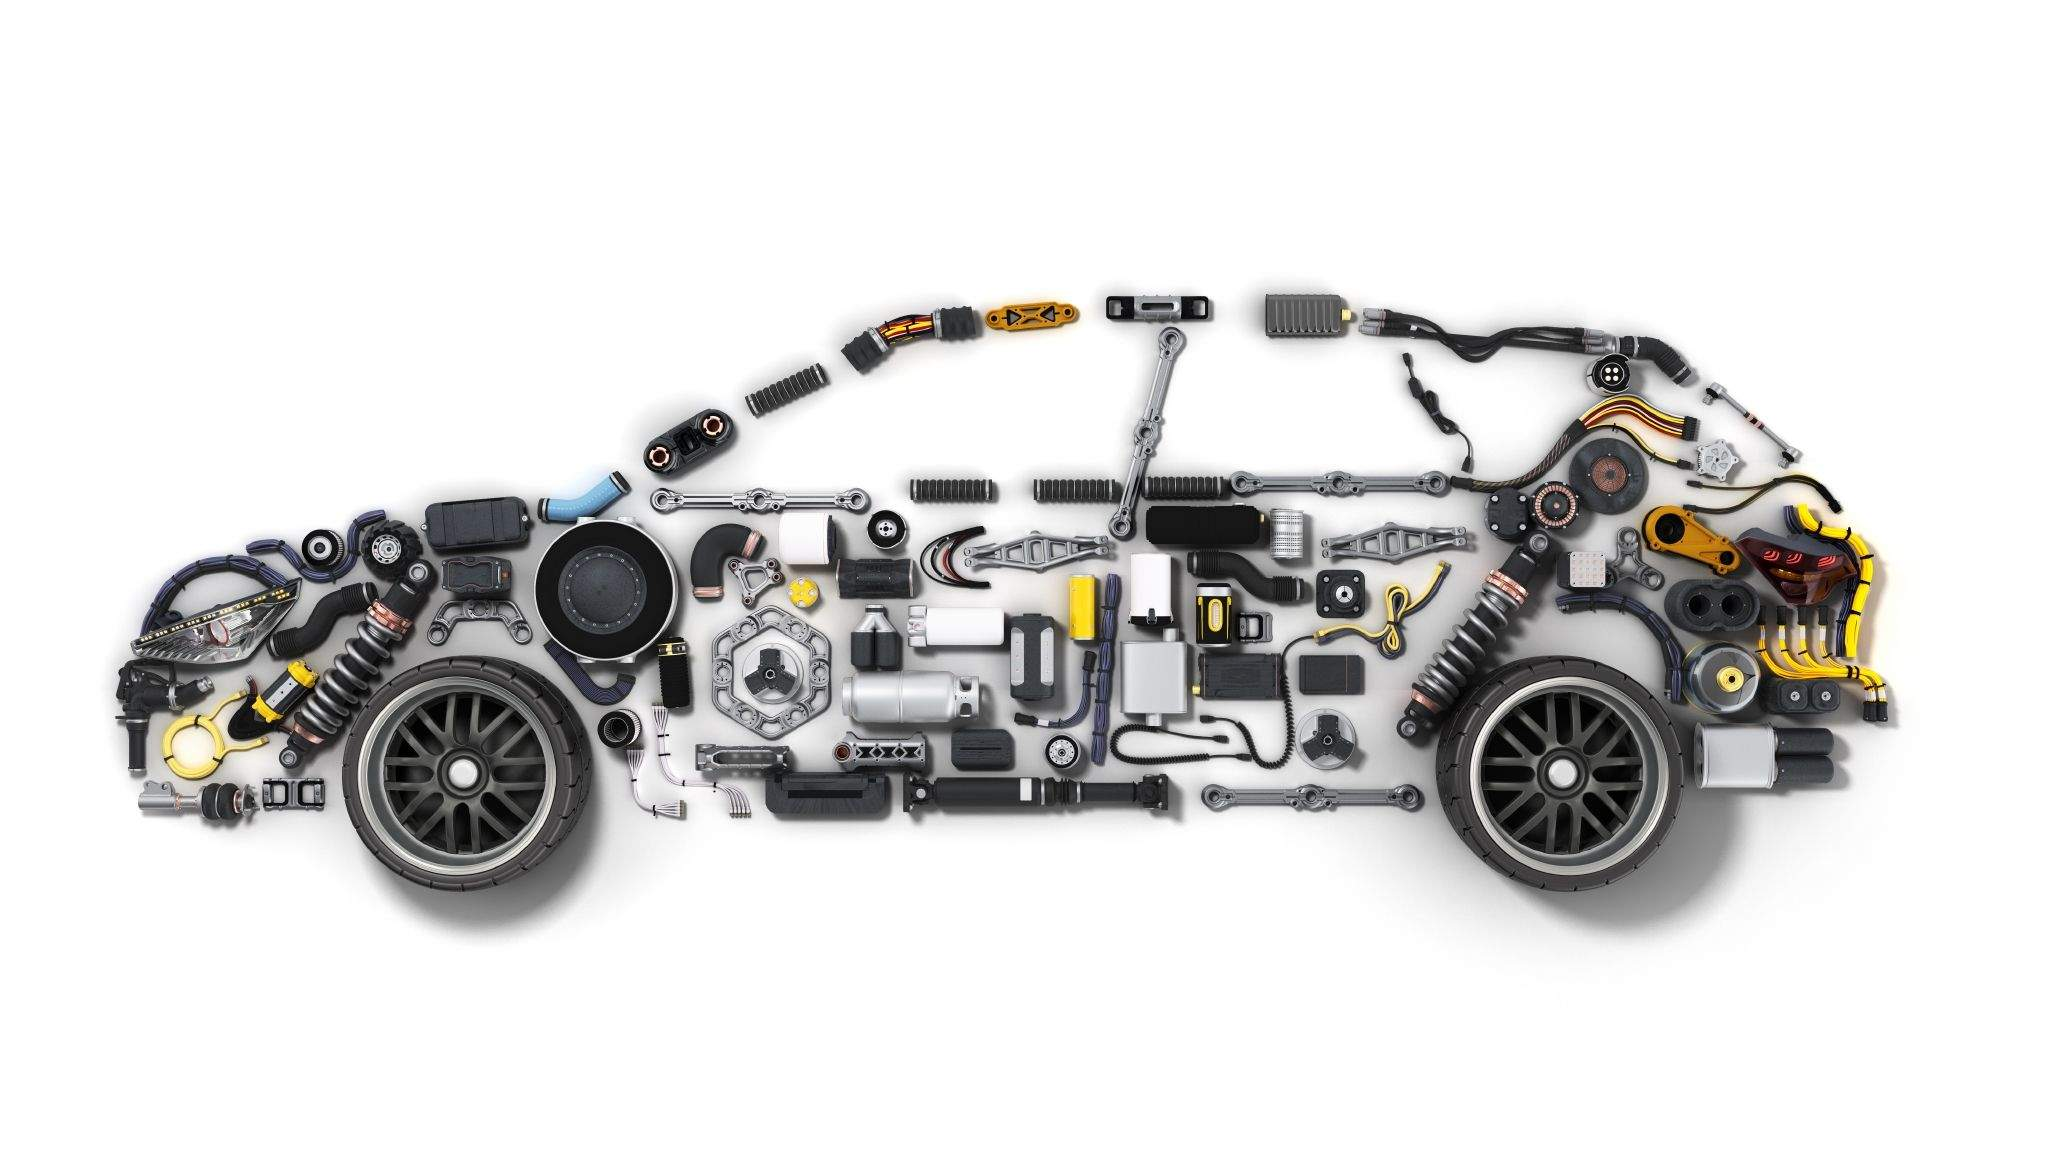 A completely built car comprises of numerous parts, printed circuit boards (PCBs) are among some of them.